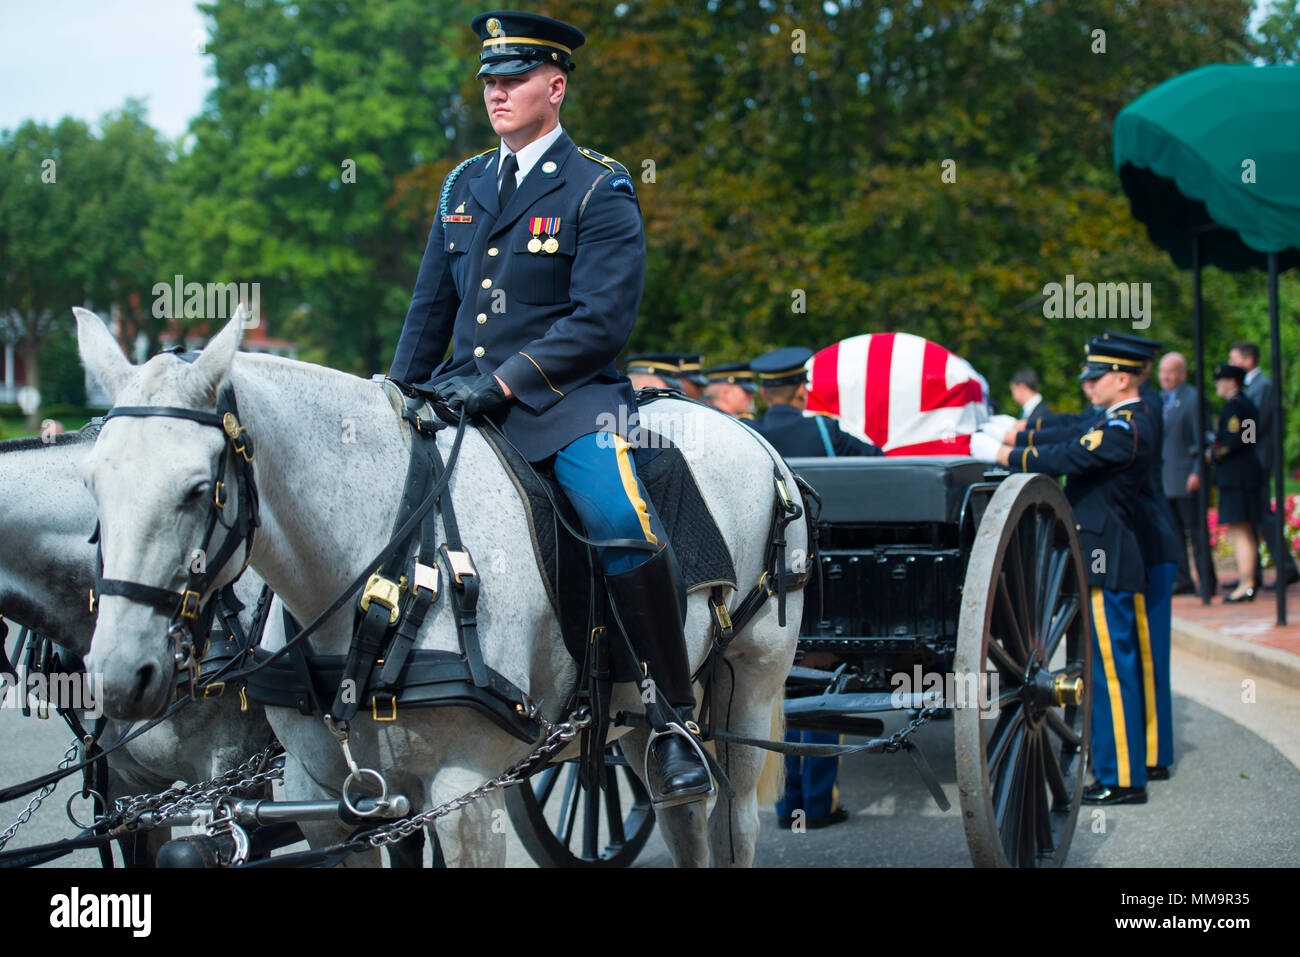 Members of the 3d U.S. Infantry Regiment (The Old Guard) Caisson Platoon participate in the full honors service for Army Air Forces 1st. Lt. Francis Pitonyak at Arlington National Cemetery, Arlington, Va., Sept. 22, 2017.  Pitonyak, a member of the 36th Fighter Group, 8th Fighter Squadron during WWII, went missing in October 1943 during deteriorating weather conditions and lost visibility near Port Moresby, Territory of Papua.  His remains were identified by a DPAA recovery team in July 2016 from dental remains recovered from a crash site in Papua New Guinea.  (U.S. Army photo by Elizabeth Fra - Stock Image